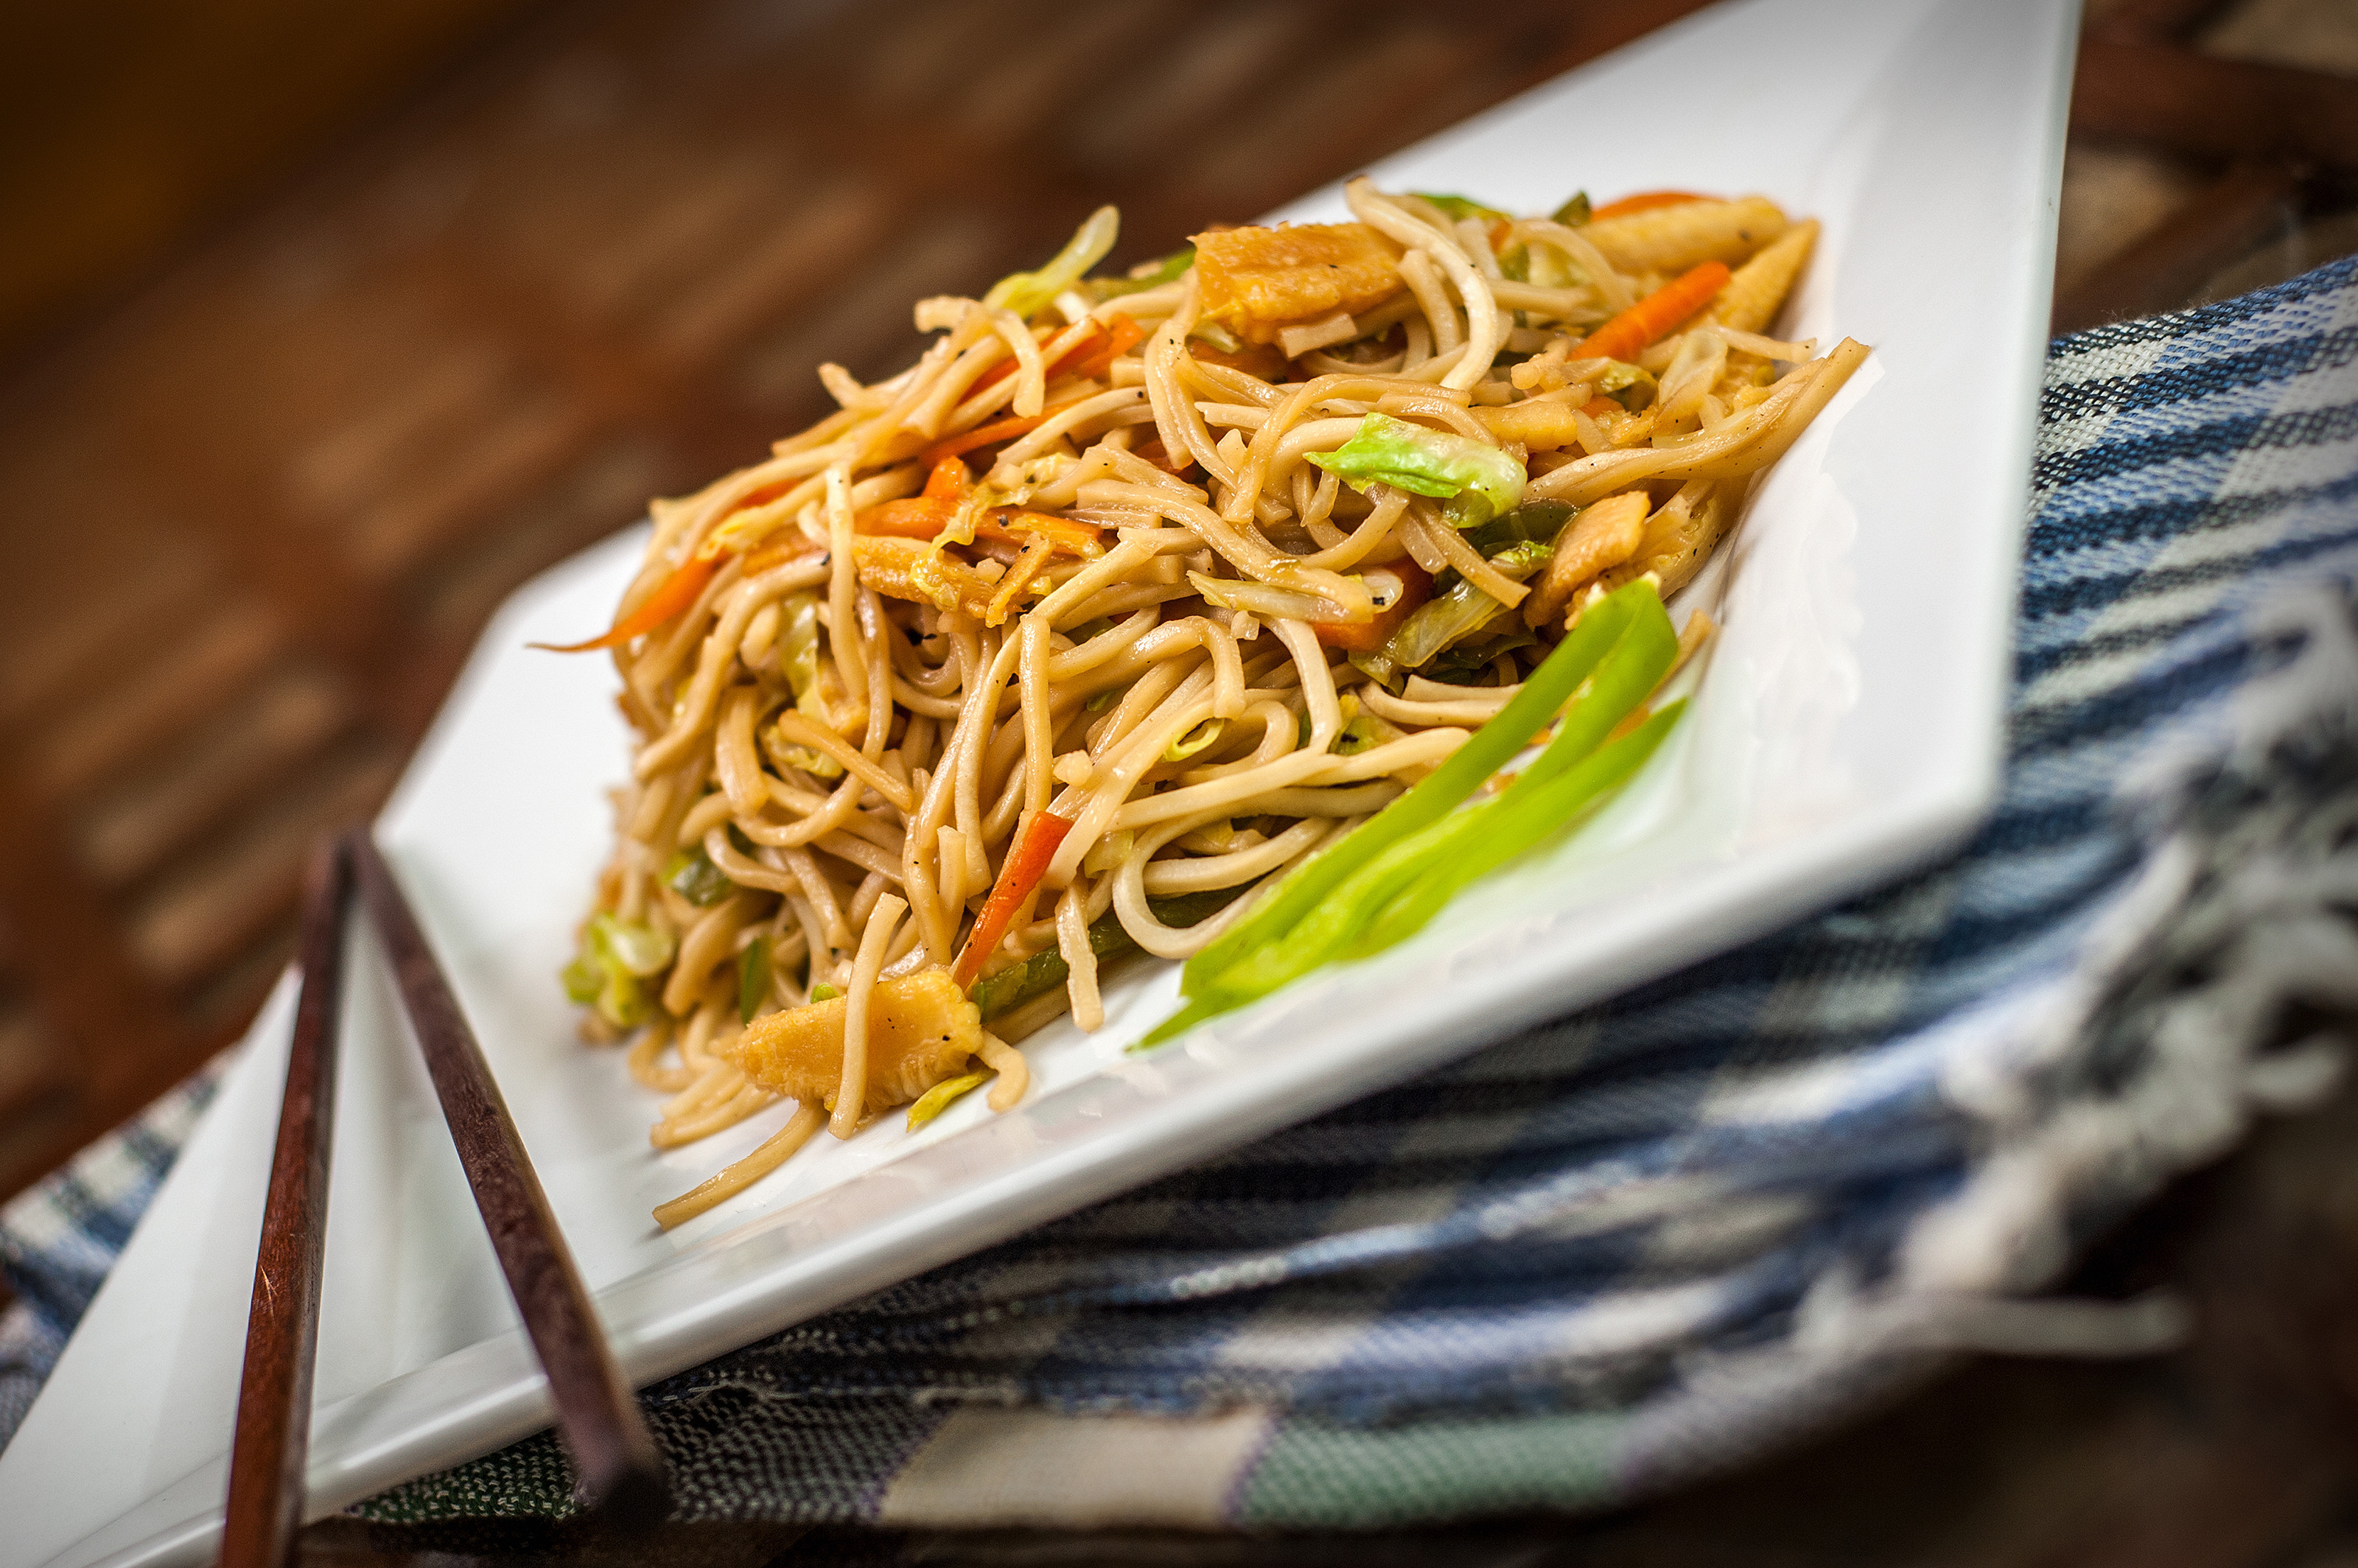 How To Make Chinese Noodles  How to Make Chinese Noodles and Ve ables 7 Steps